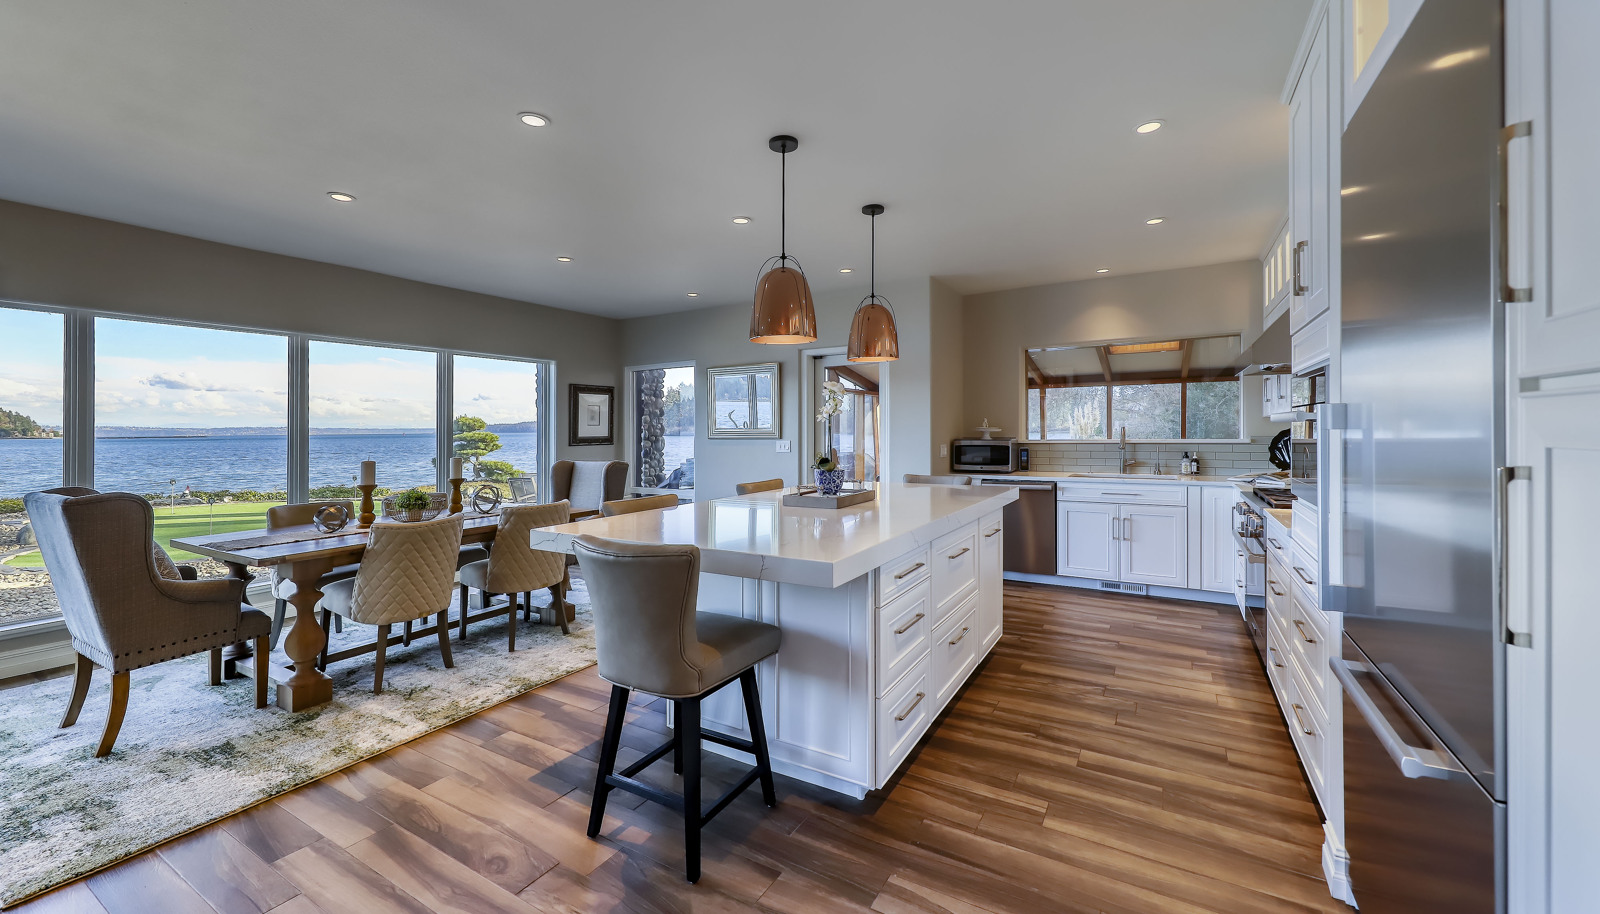 Beautifully updated kitchen with quartz counters, tons of storage, and a full suite of Miele appliances!